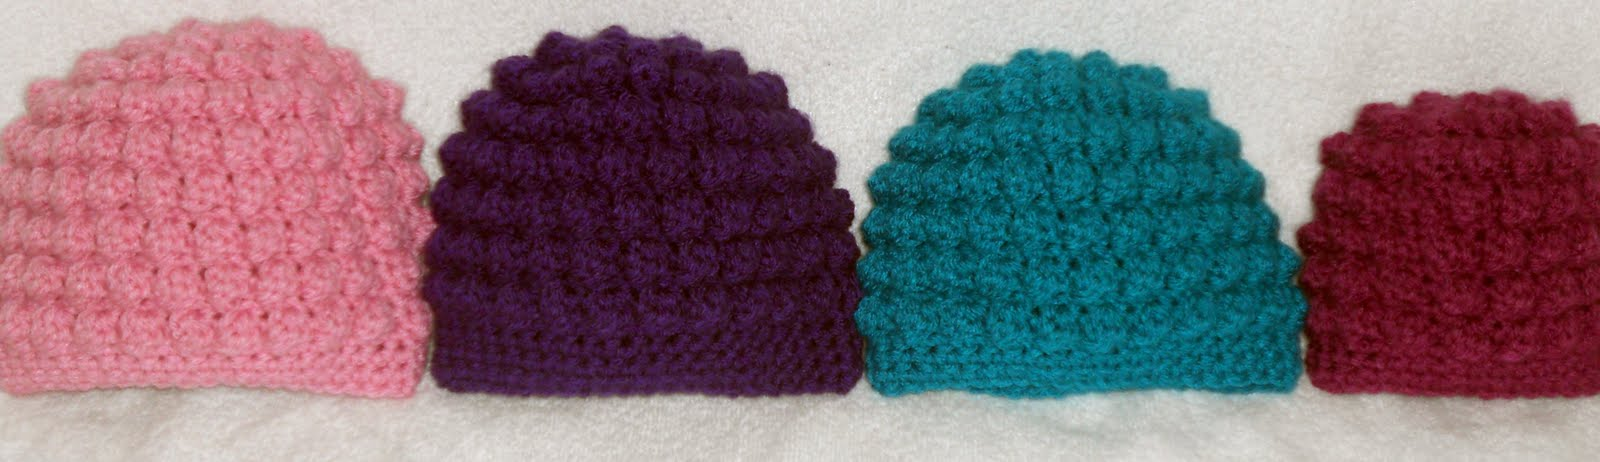 Crafty Woman Creations: Free Baby Bumpy Bobbles Beanie ...